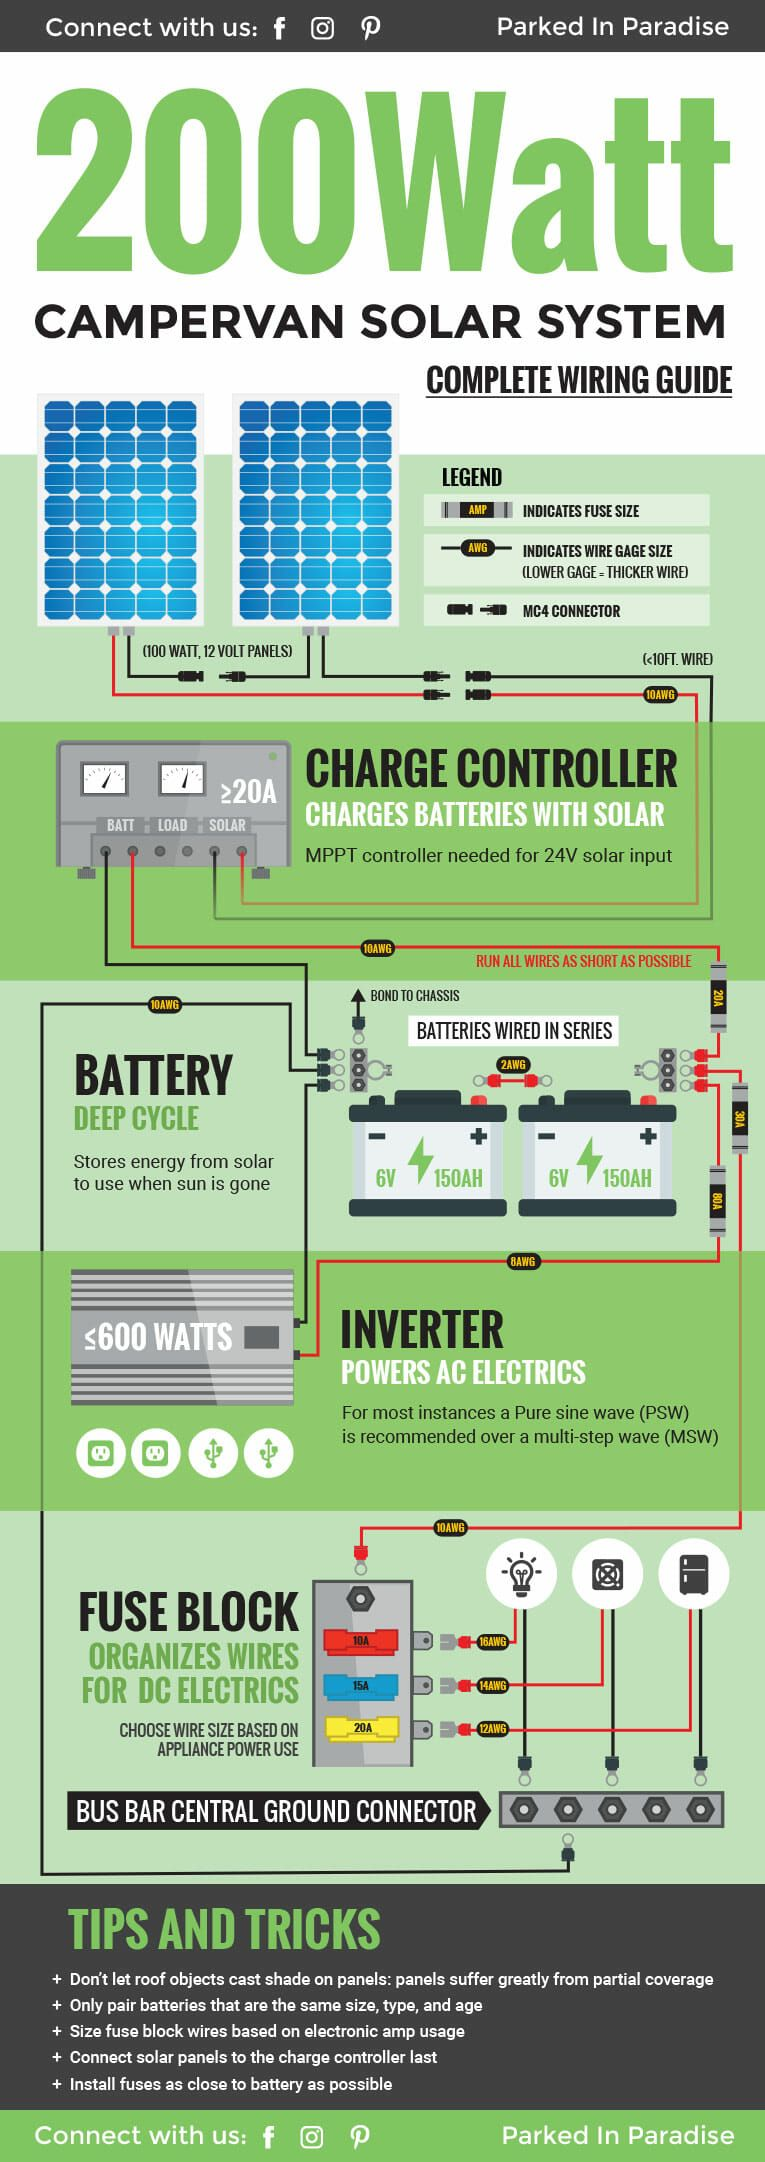 complete diy wiring guide for a 200 watt solar panel system perfect for a campervan [ 765 x 2162 Pixel ]